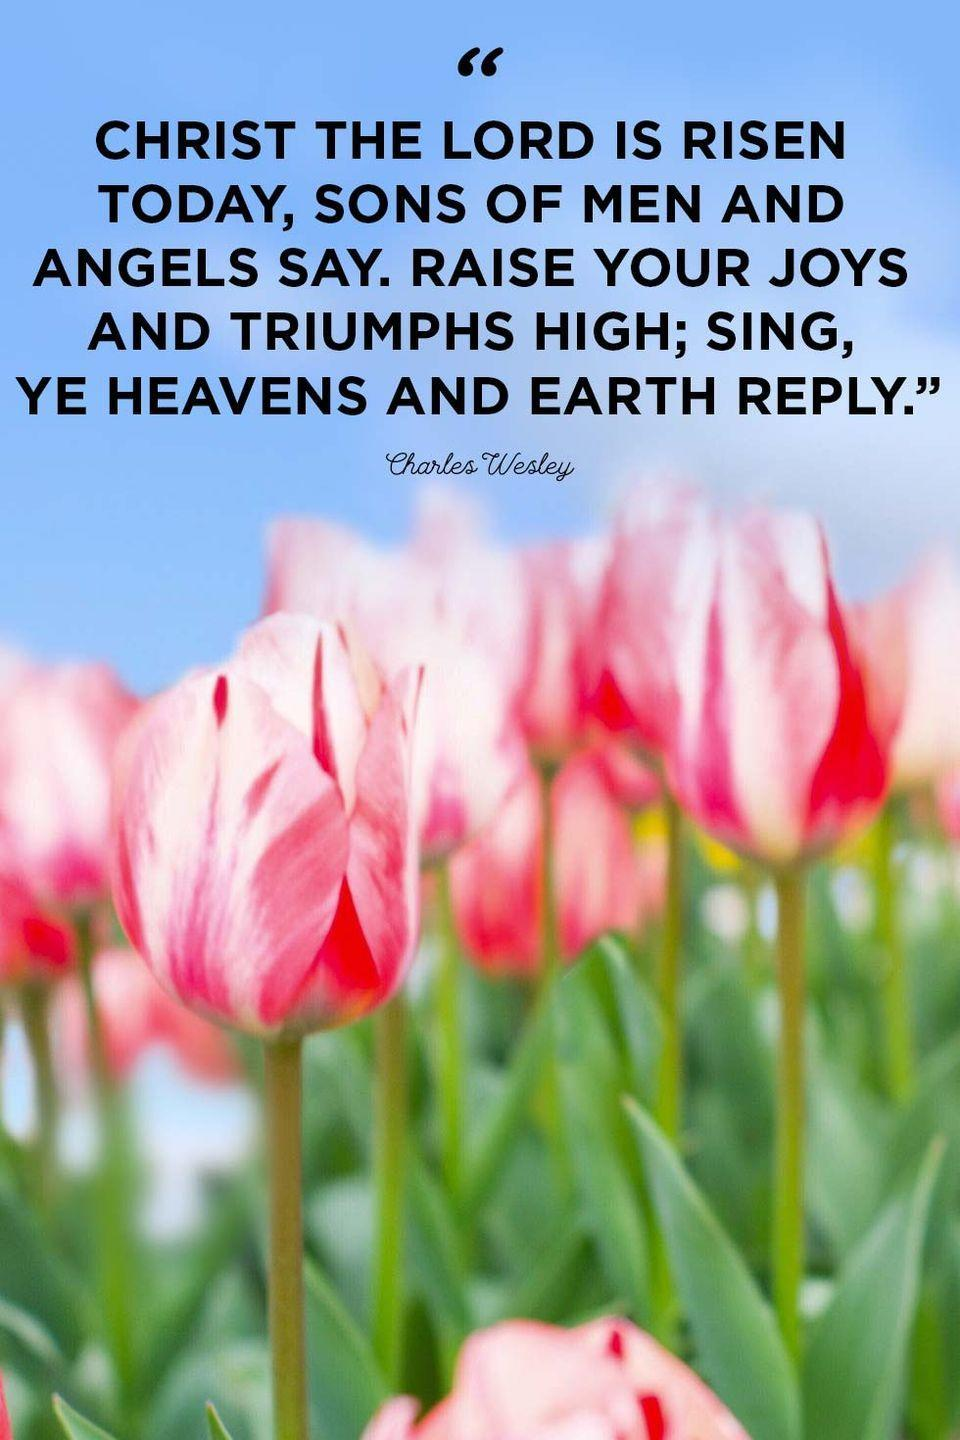 """<p>""""Christ the Lord is risen today, sons of men and angels say. Raise your joys and triumphs high; sing, ye heavens and Earth reply.""""</p>"""